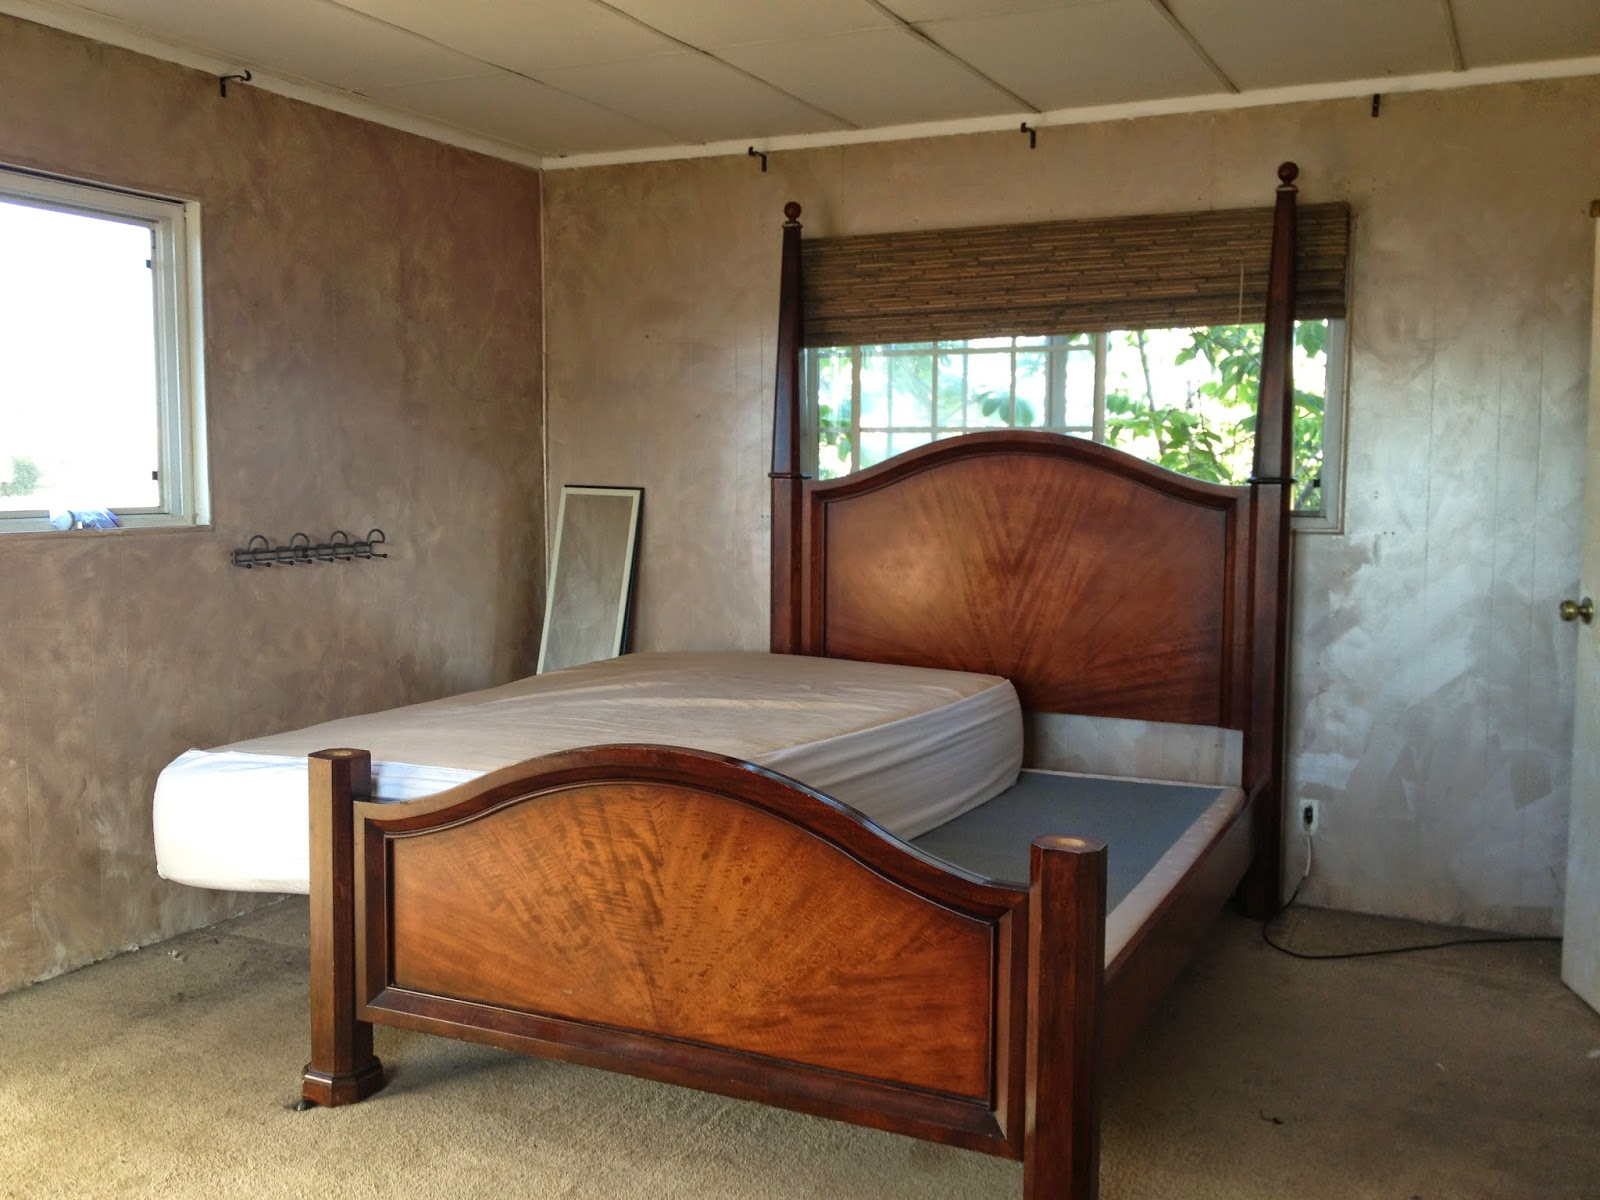 Craigslist Las Vegas Bedroom Furniture cukjatidesigncom